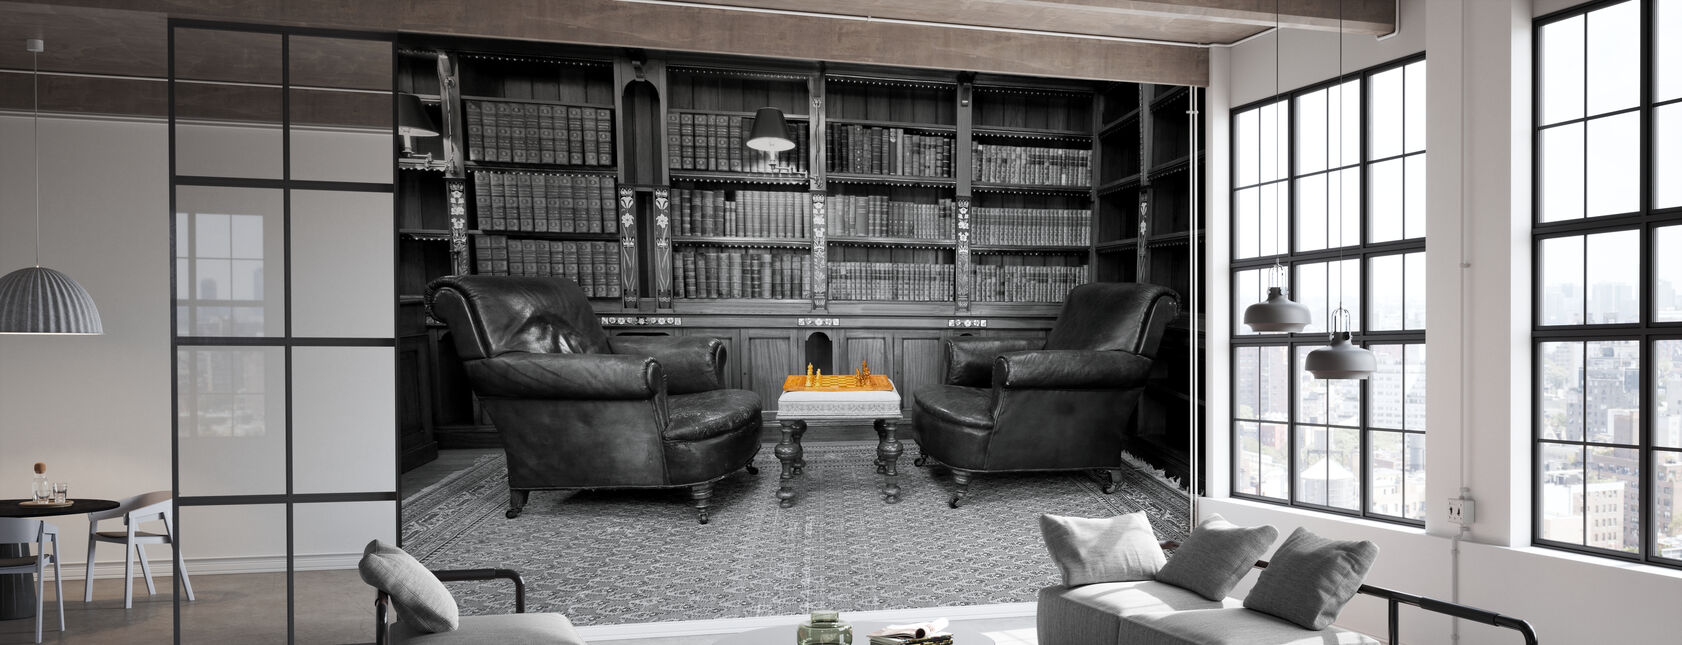 Old Library - Wallpaper - Office